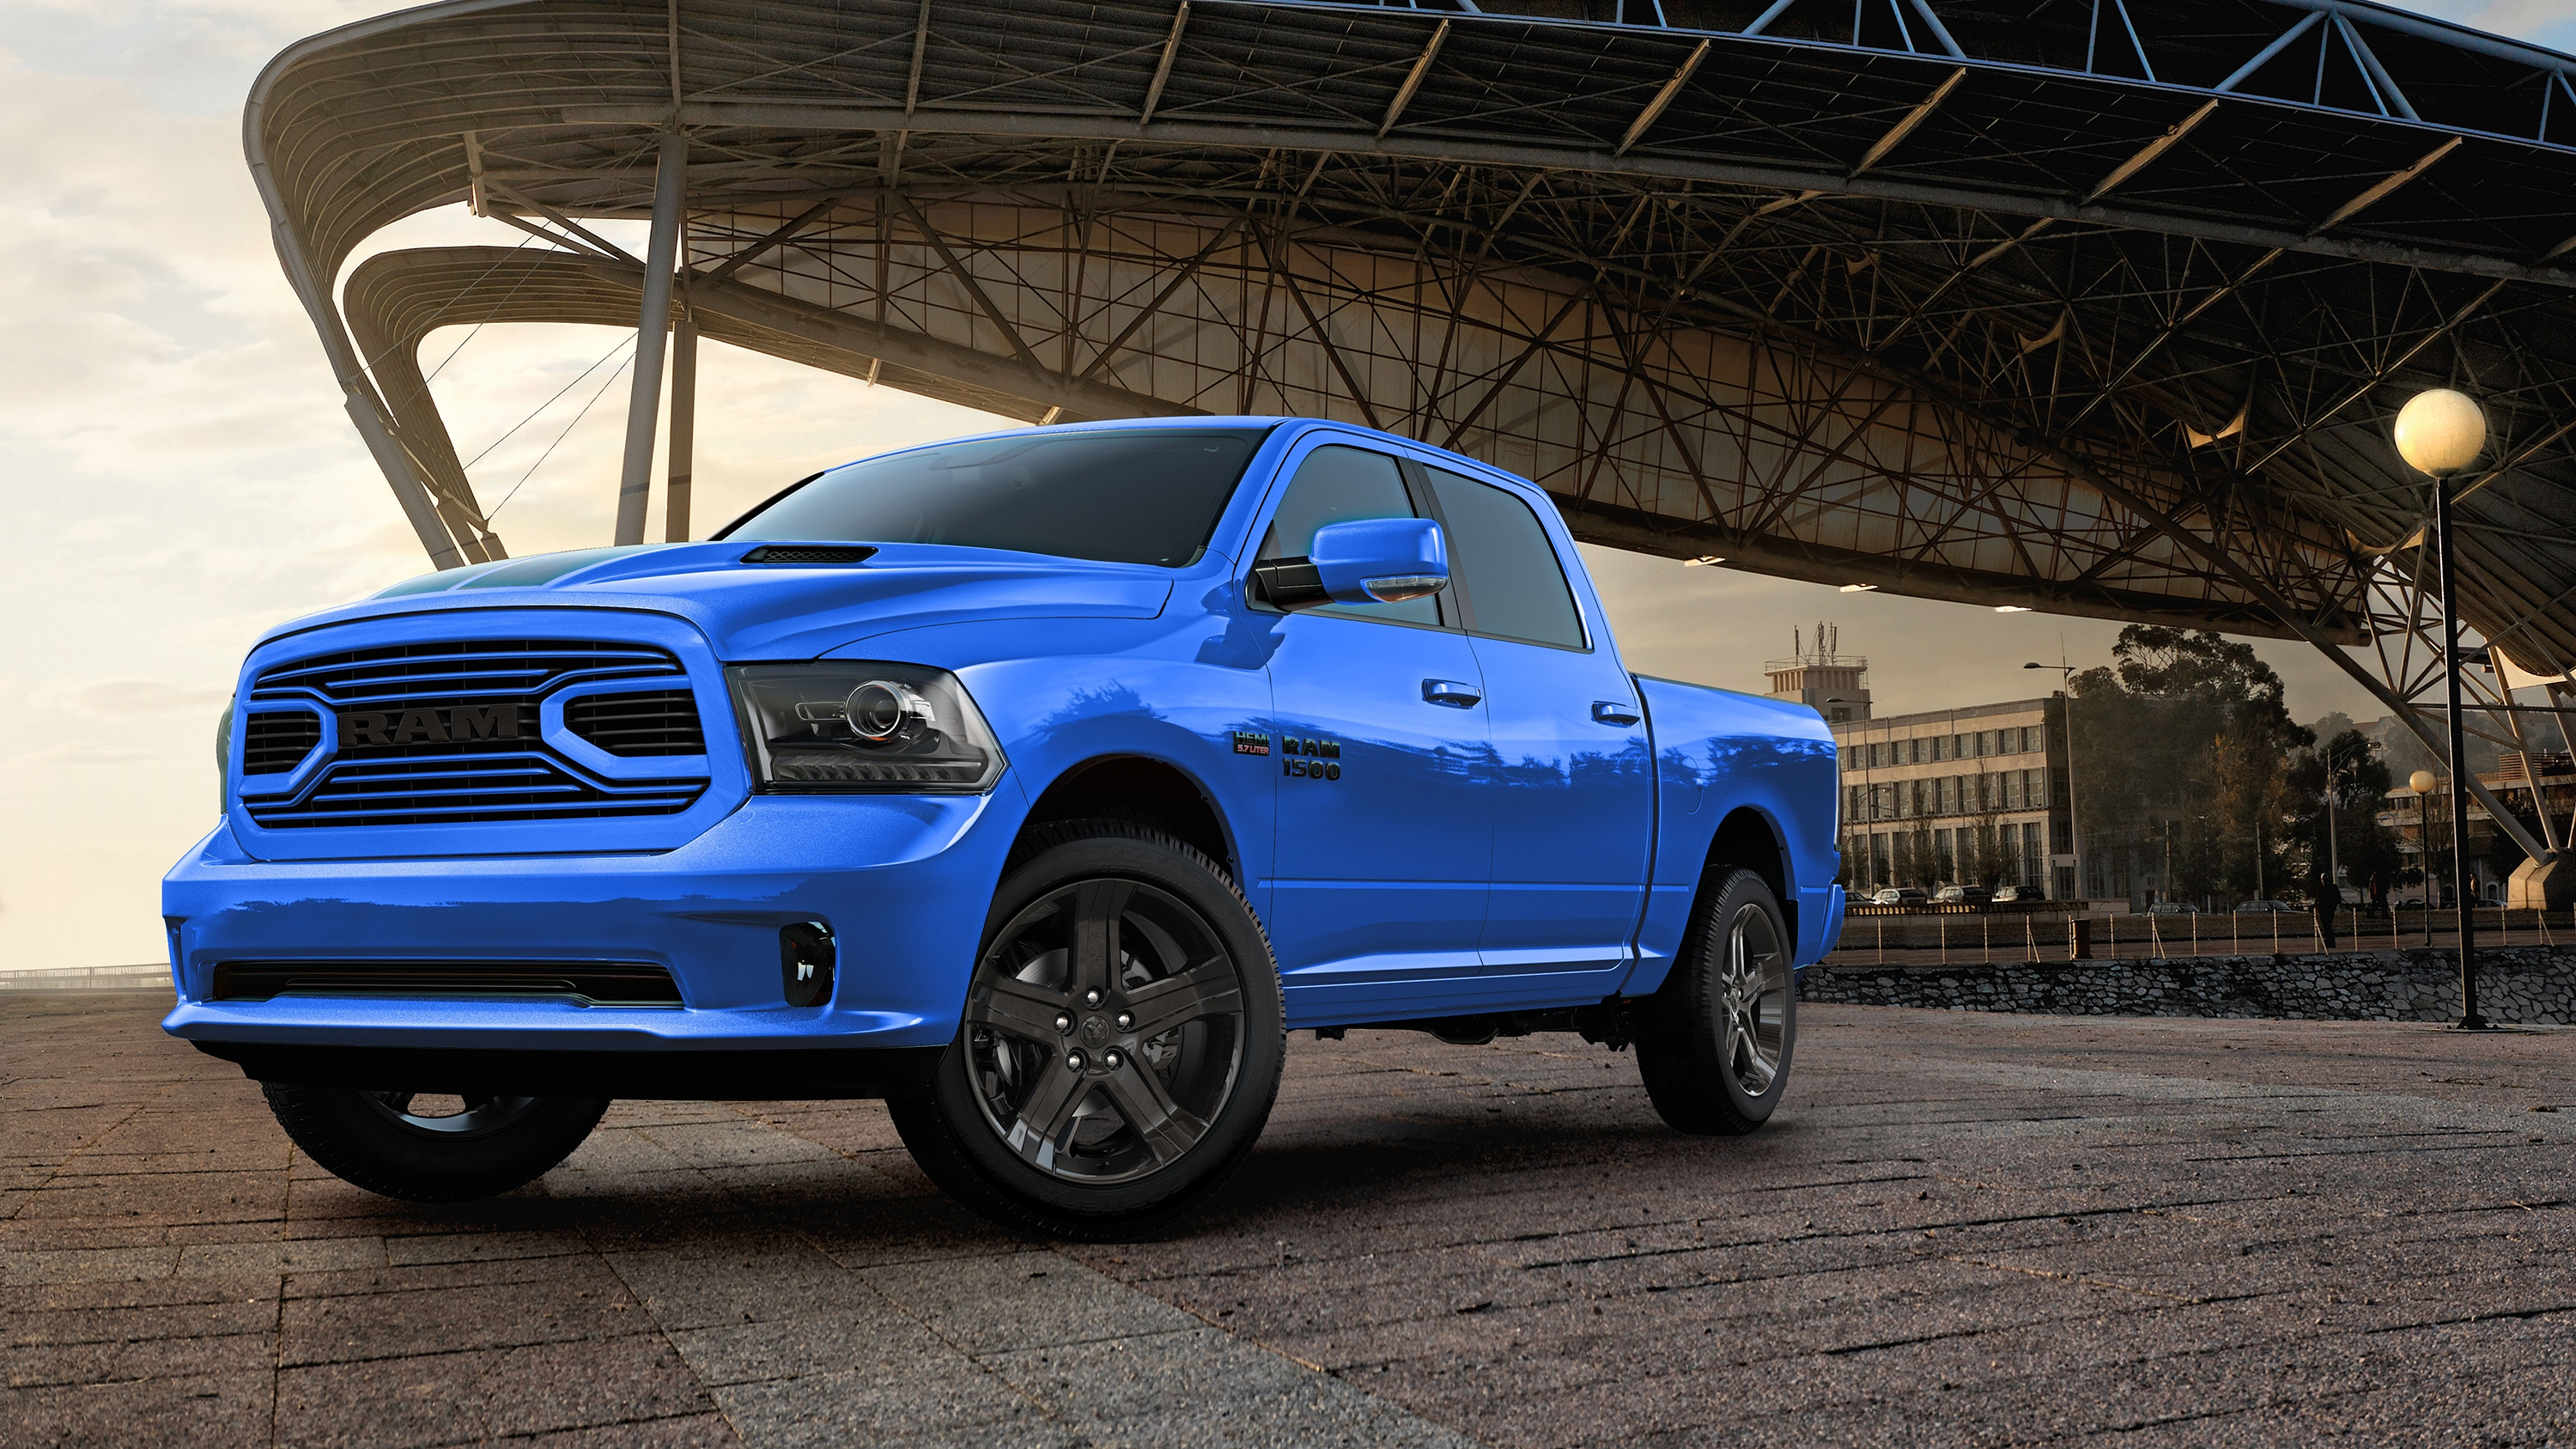 2018 Ram 1500 Hydro Blue Sport Pictures Photos